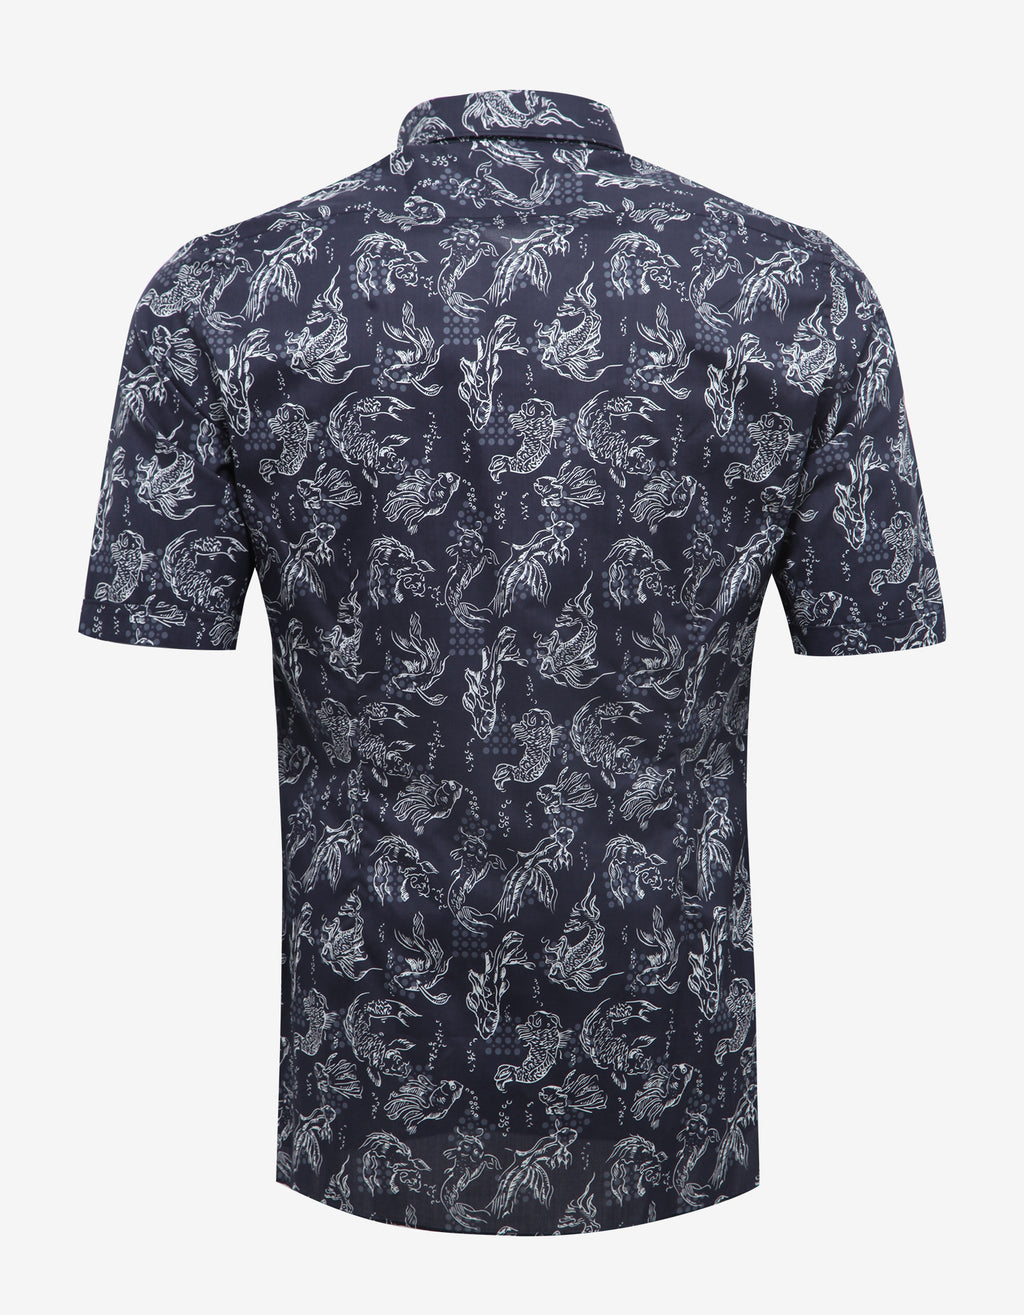 Dark Blue Koi Fish Print Short Sleeve Shirt